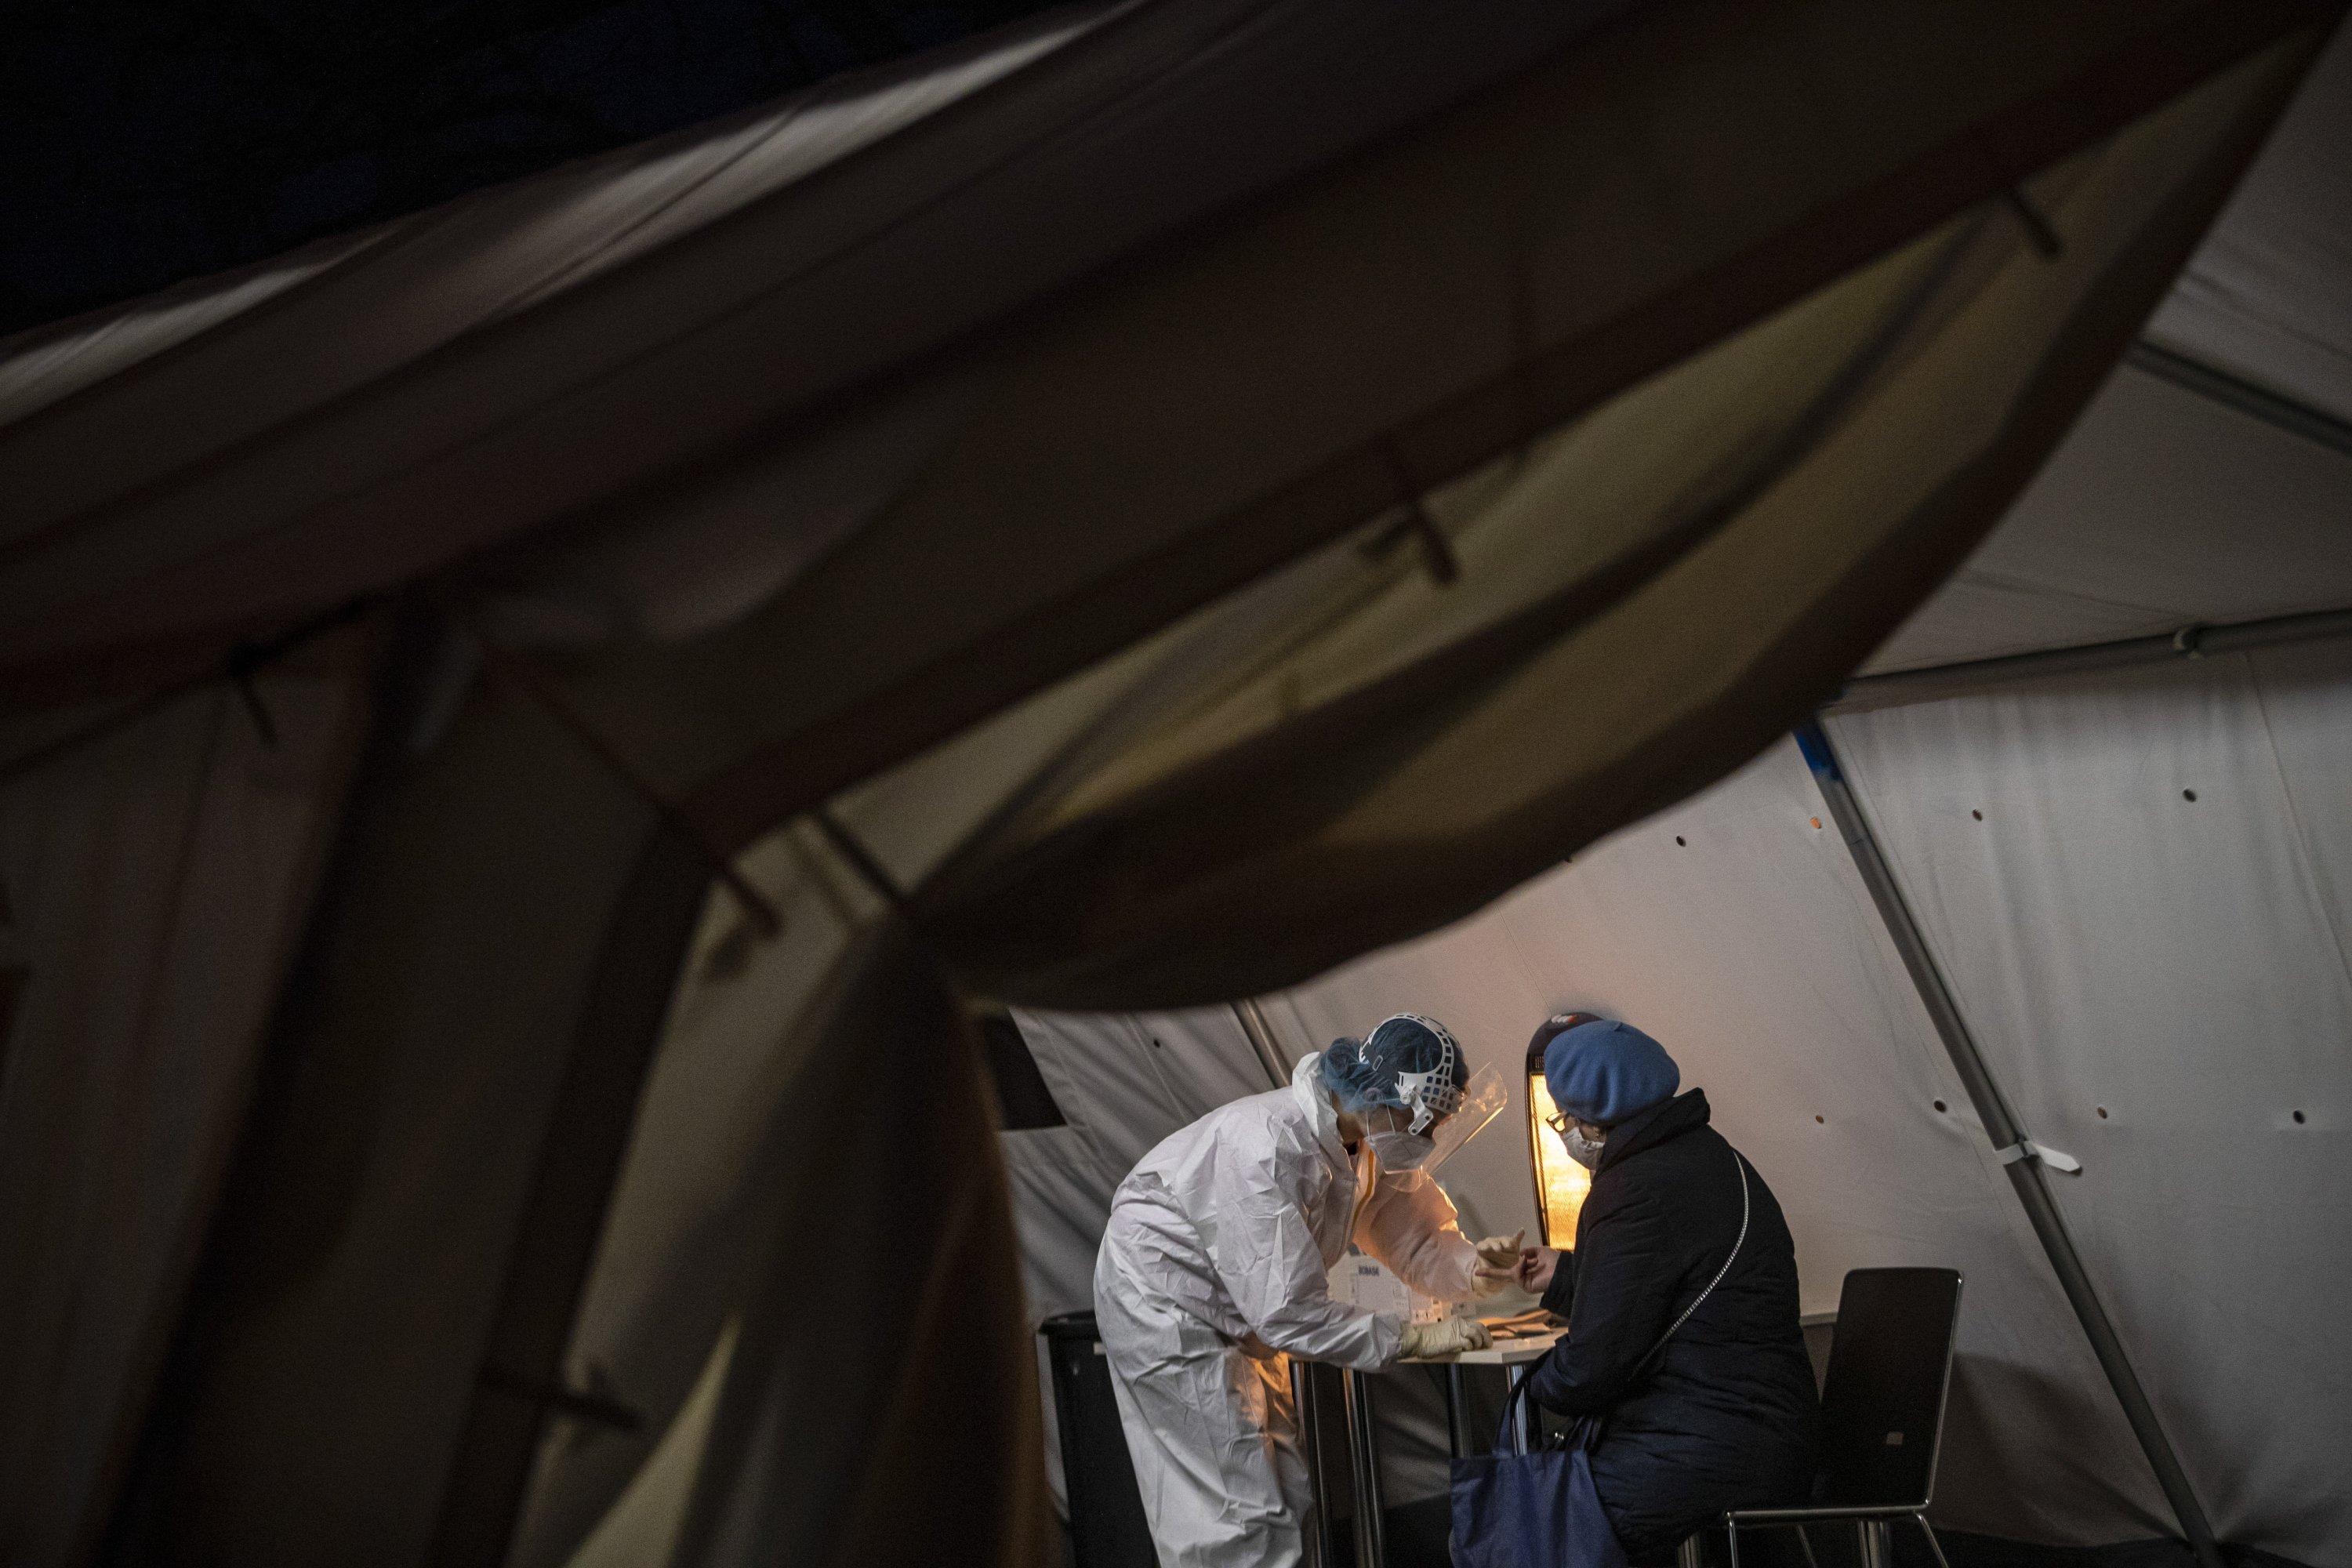 A medical worker wearing personal protective equipment (PPE) takes a sample from a woman for testing for coronavirus antibodies at drive-in coronavirus testing station in Prague, Czech Republic, Feb. 1, 2021. (EPA Photo)